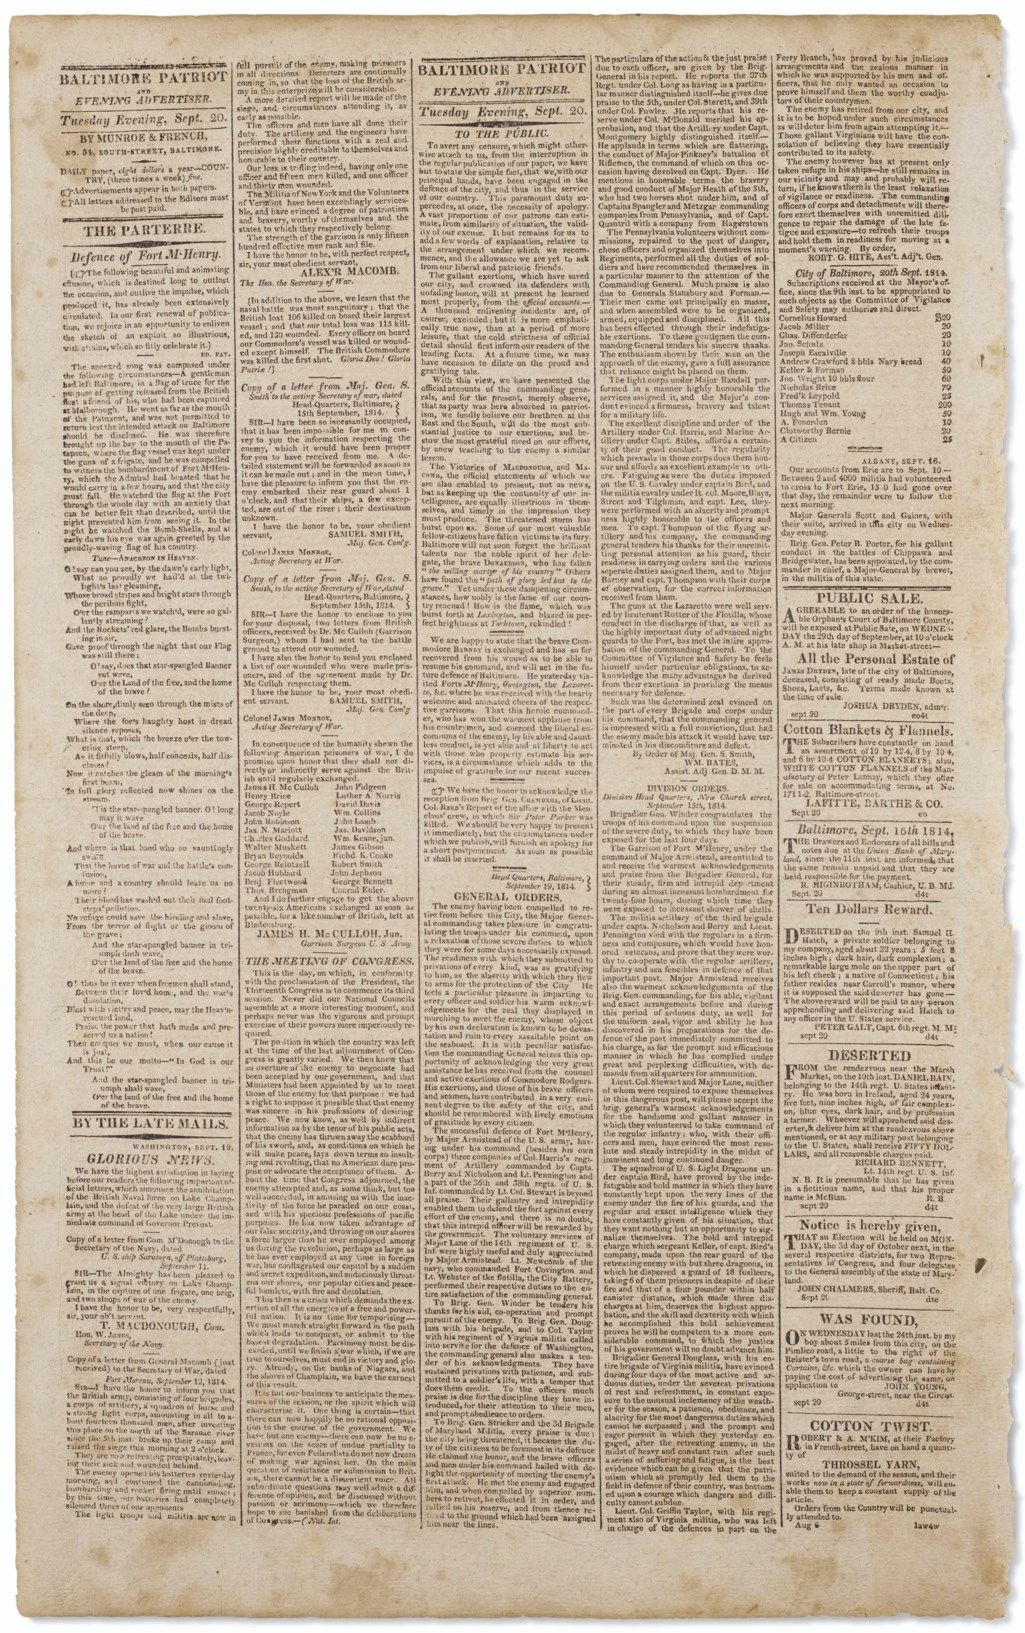 The first dated printing of the Star-Spangled Banner